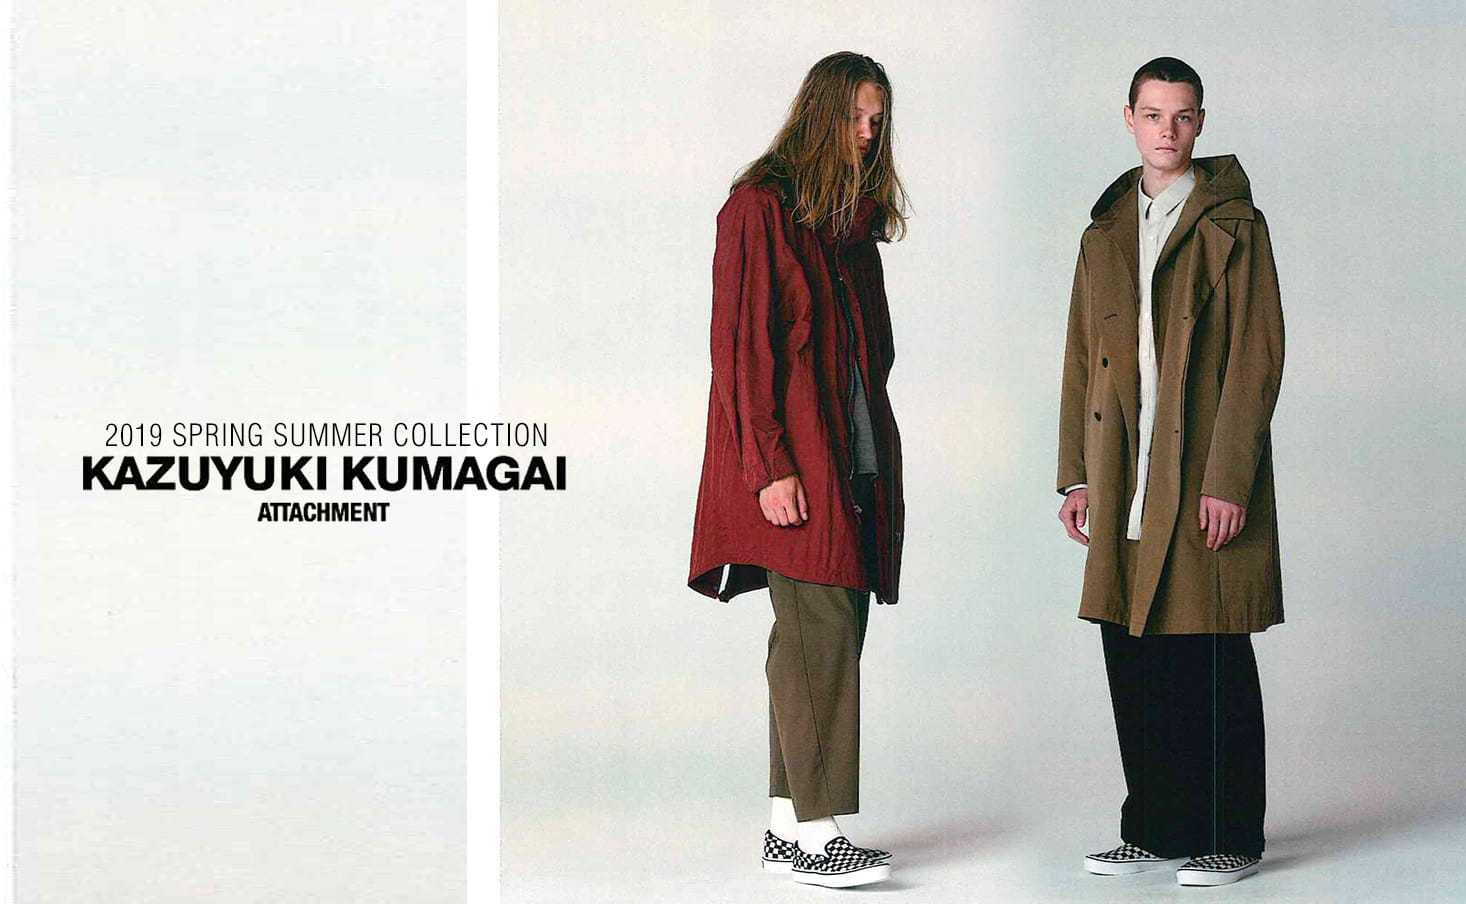 Kazuyuki Kumagai 2019 Spring Summer Collection